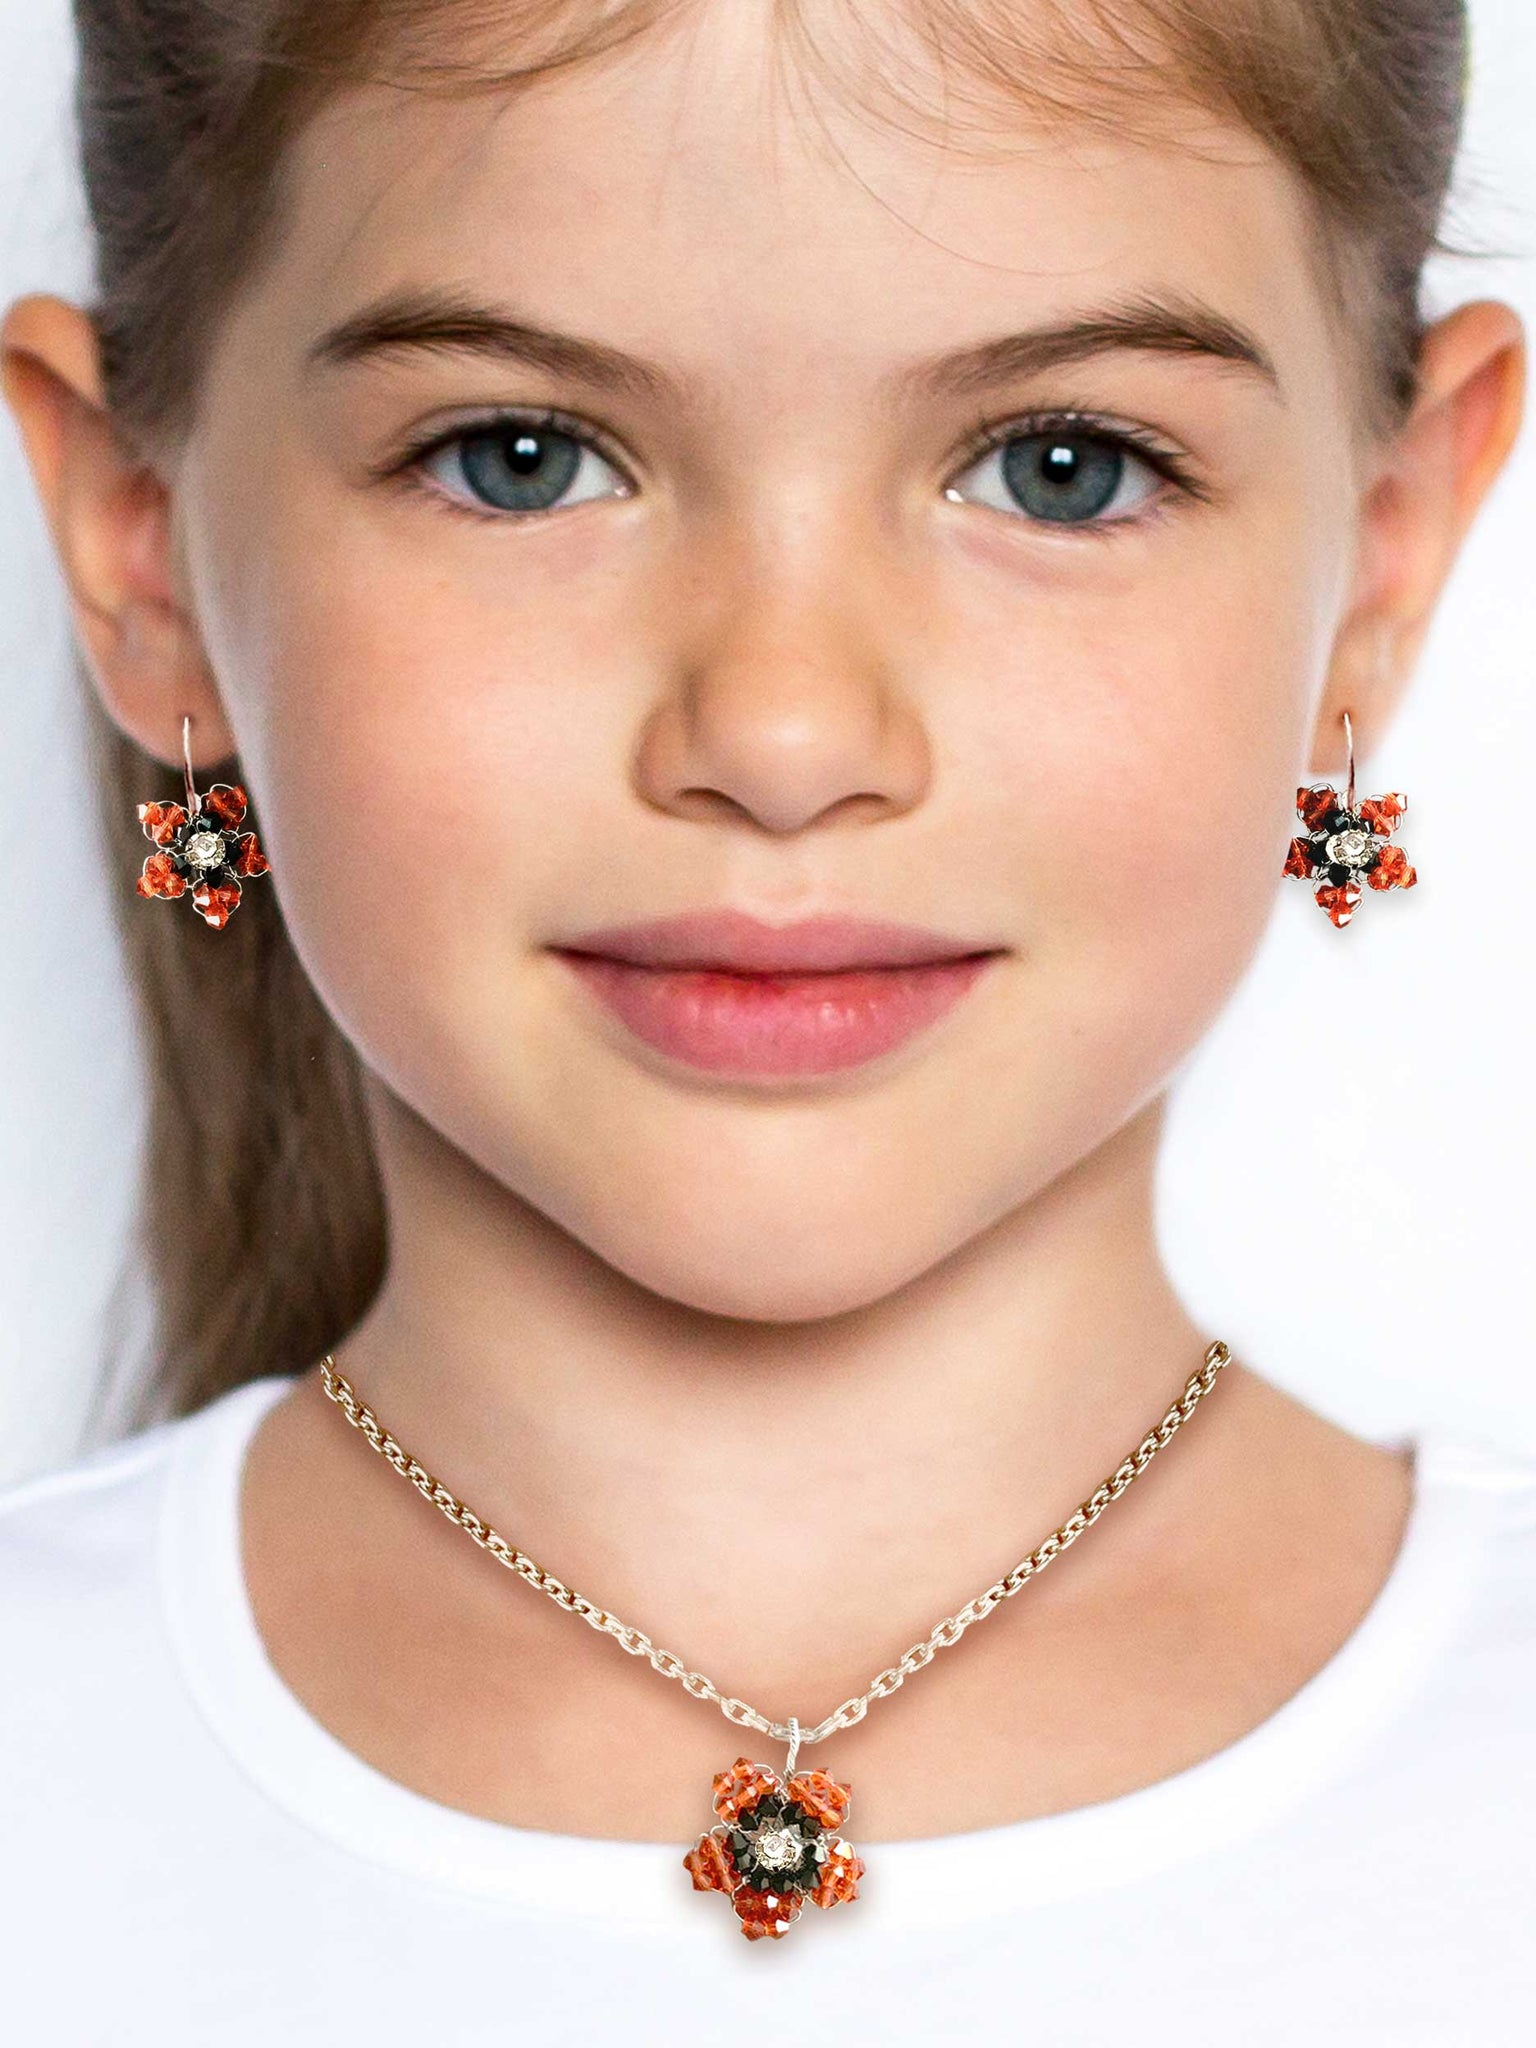 NKF X-Small Earrings Only (Child Size Earrings)